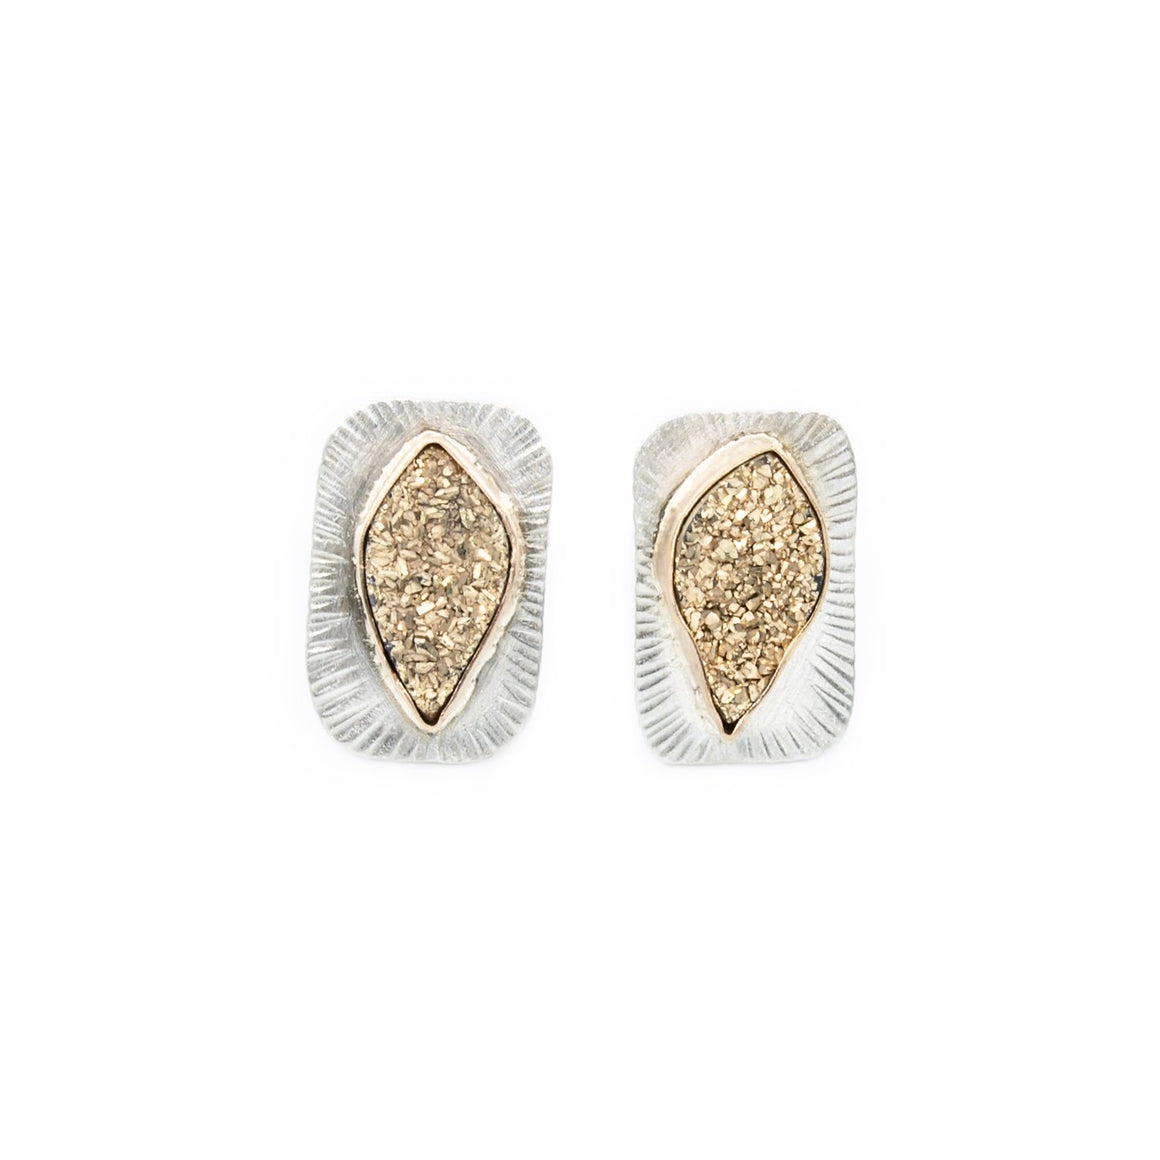 14k Gold and Silver Druze Stud Earrings by Original Sin Jewelry